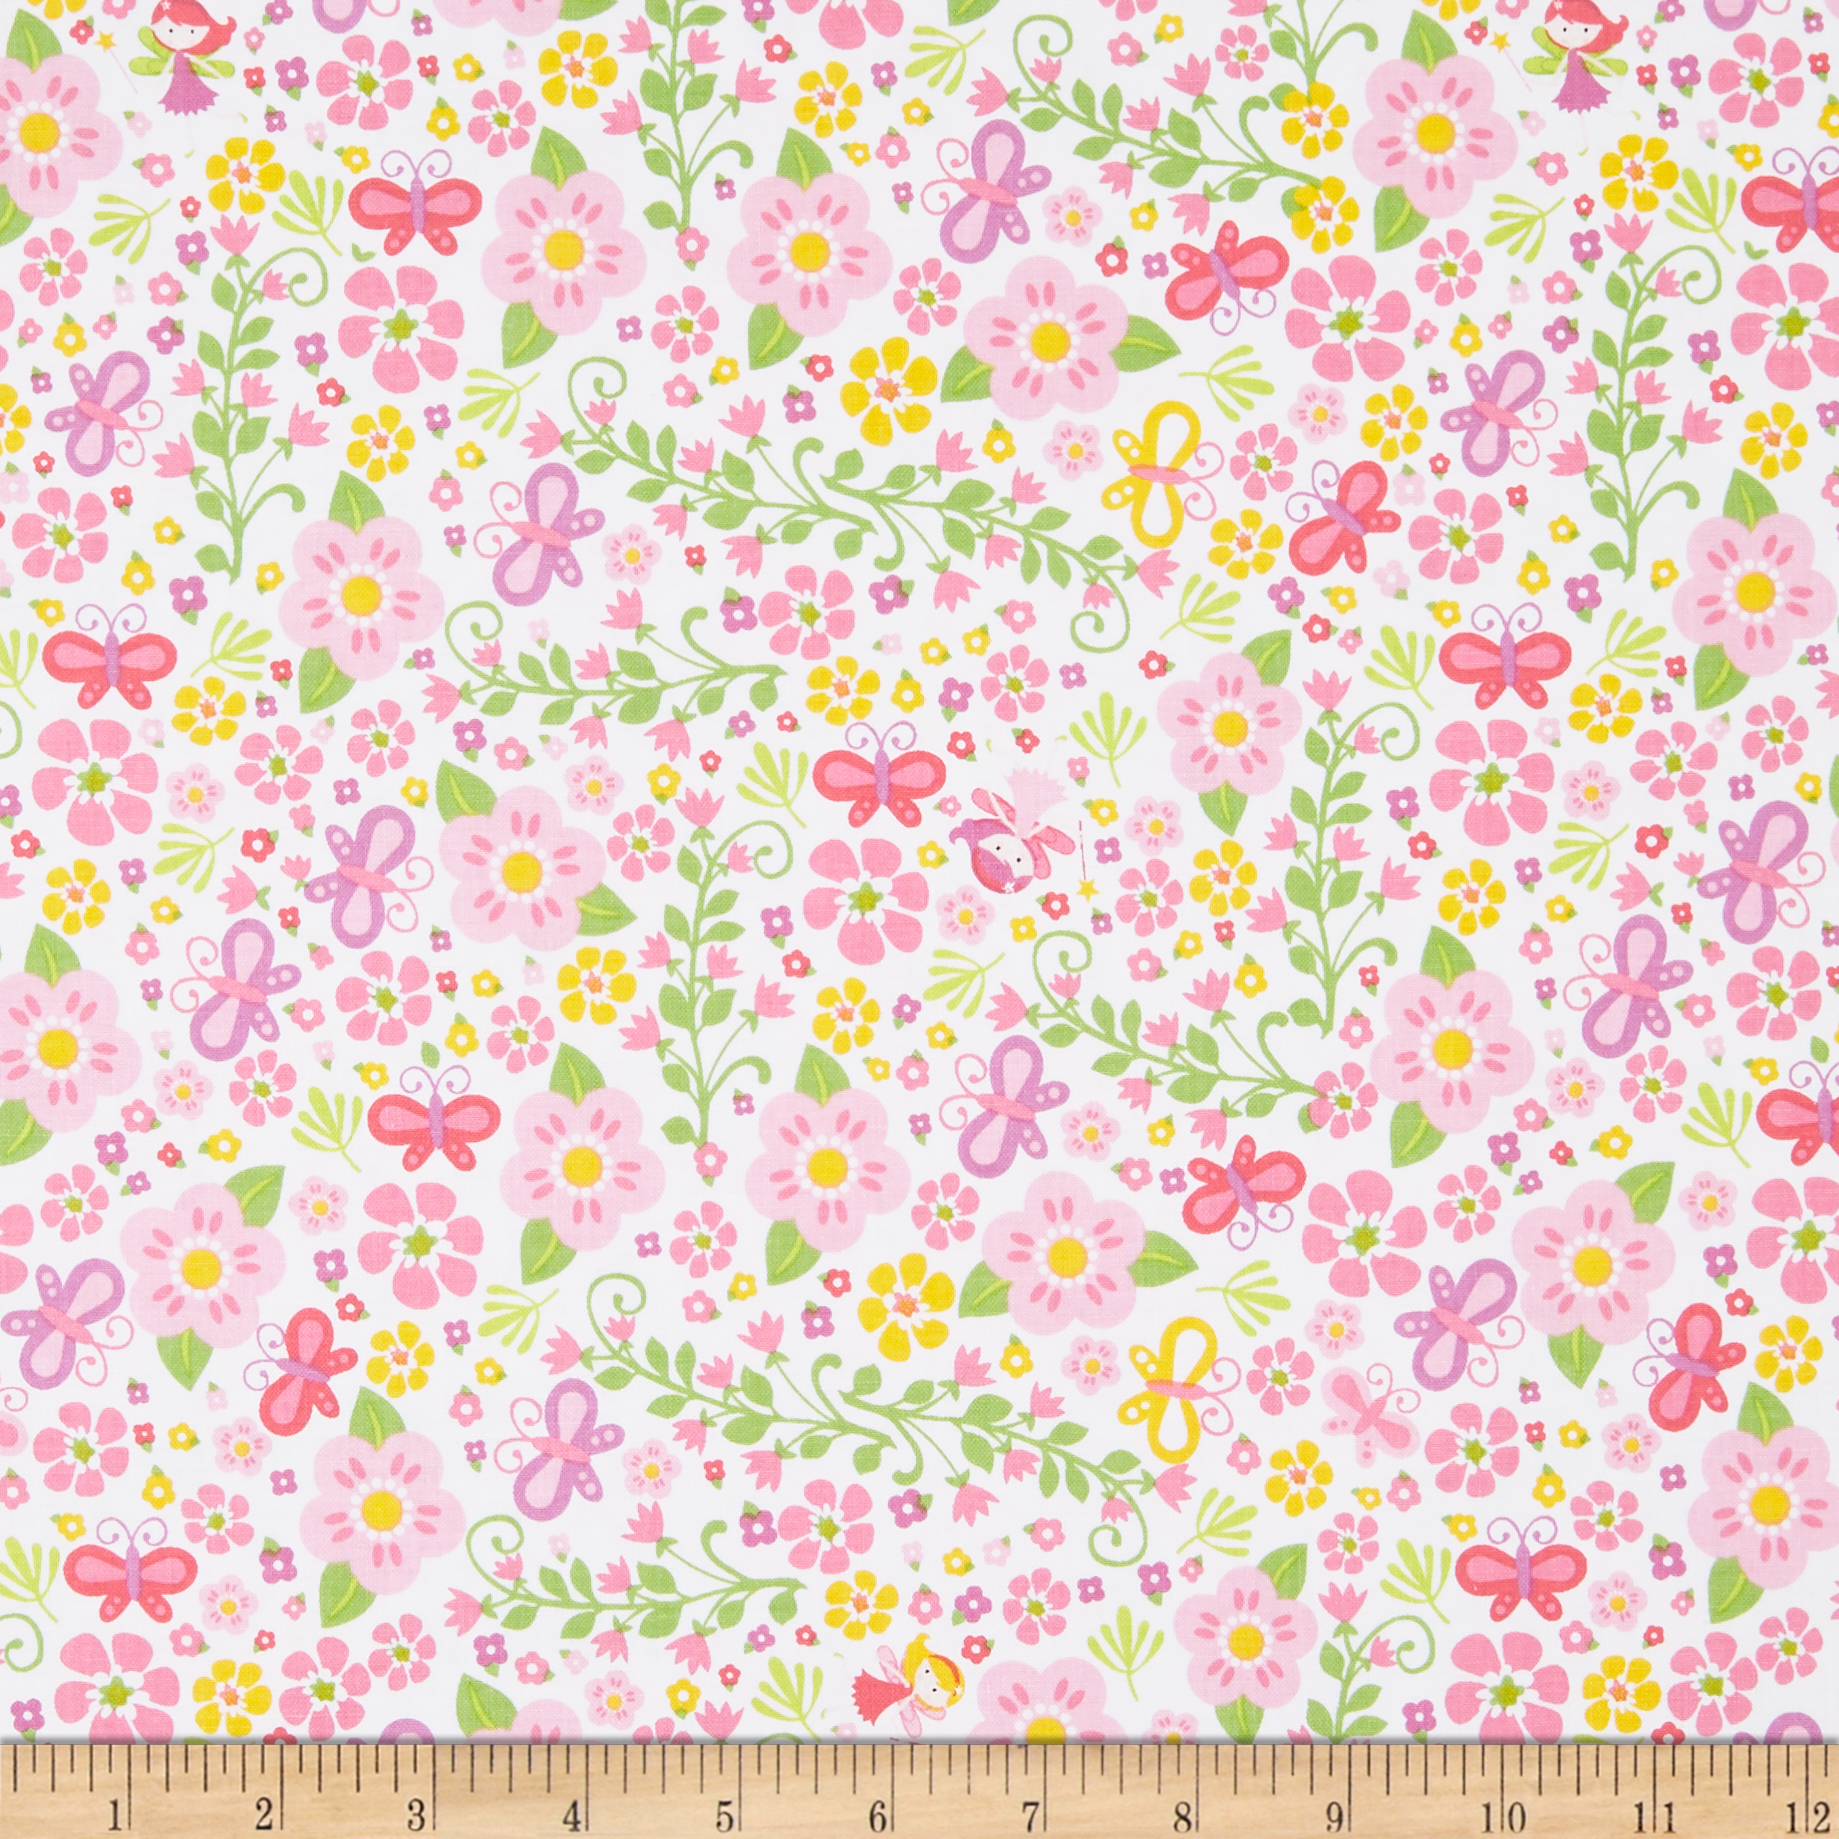 INOpets.com Anything for Pets Parents & Their Pets Riley Blake Fairy Garden Garden White Fabric